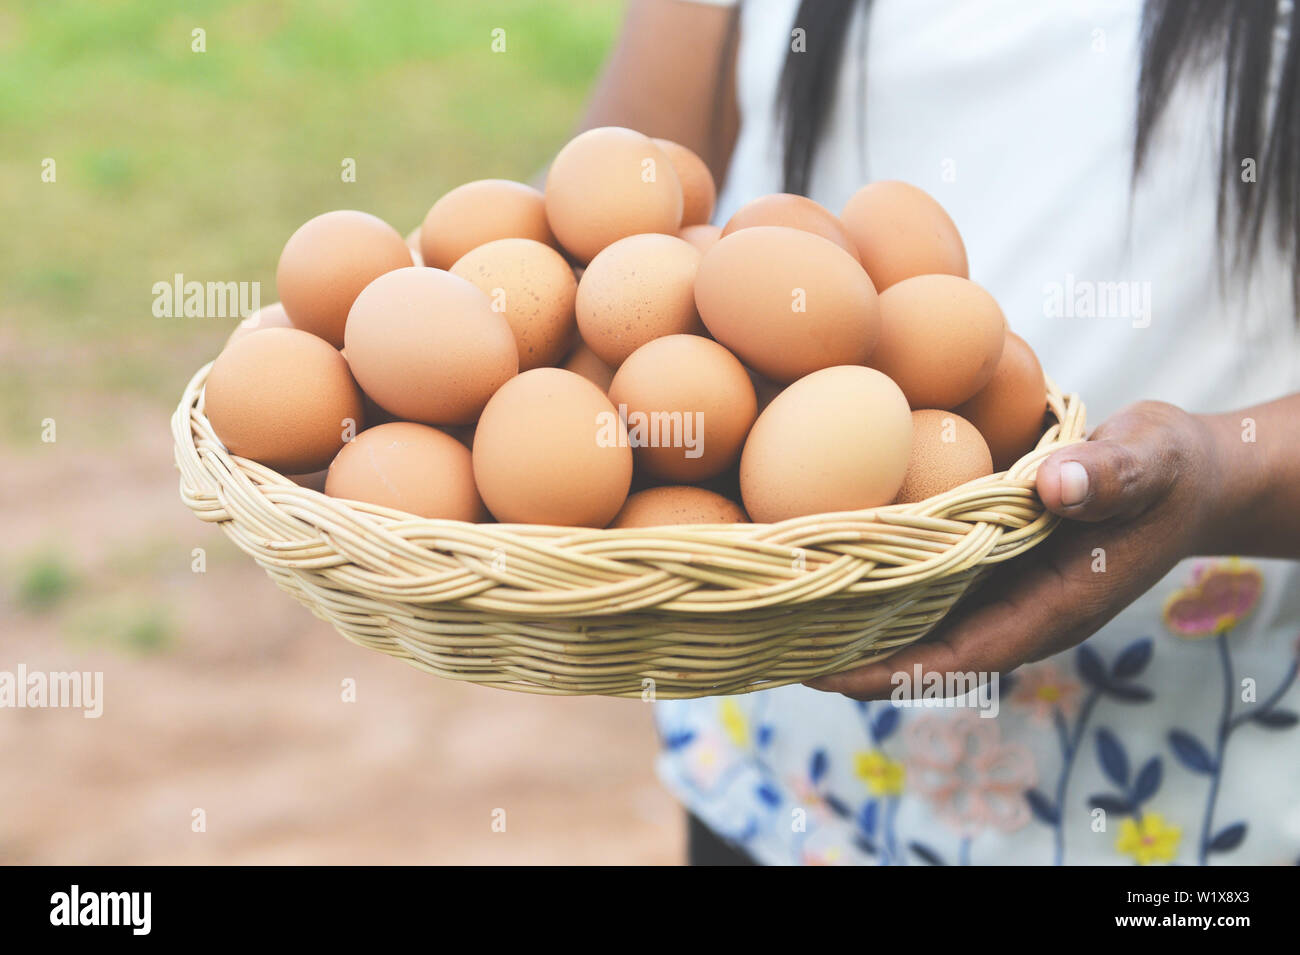 Eggs in a basket / Woman farmer holding wooden tray with fresh chicken eggs collect from farm in the countryside - Stock Image